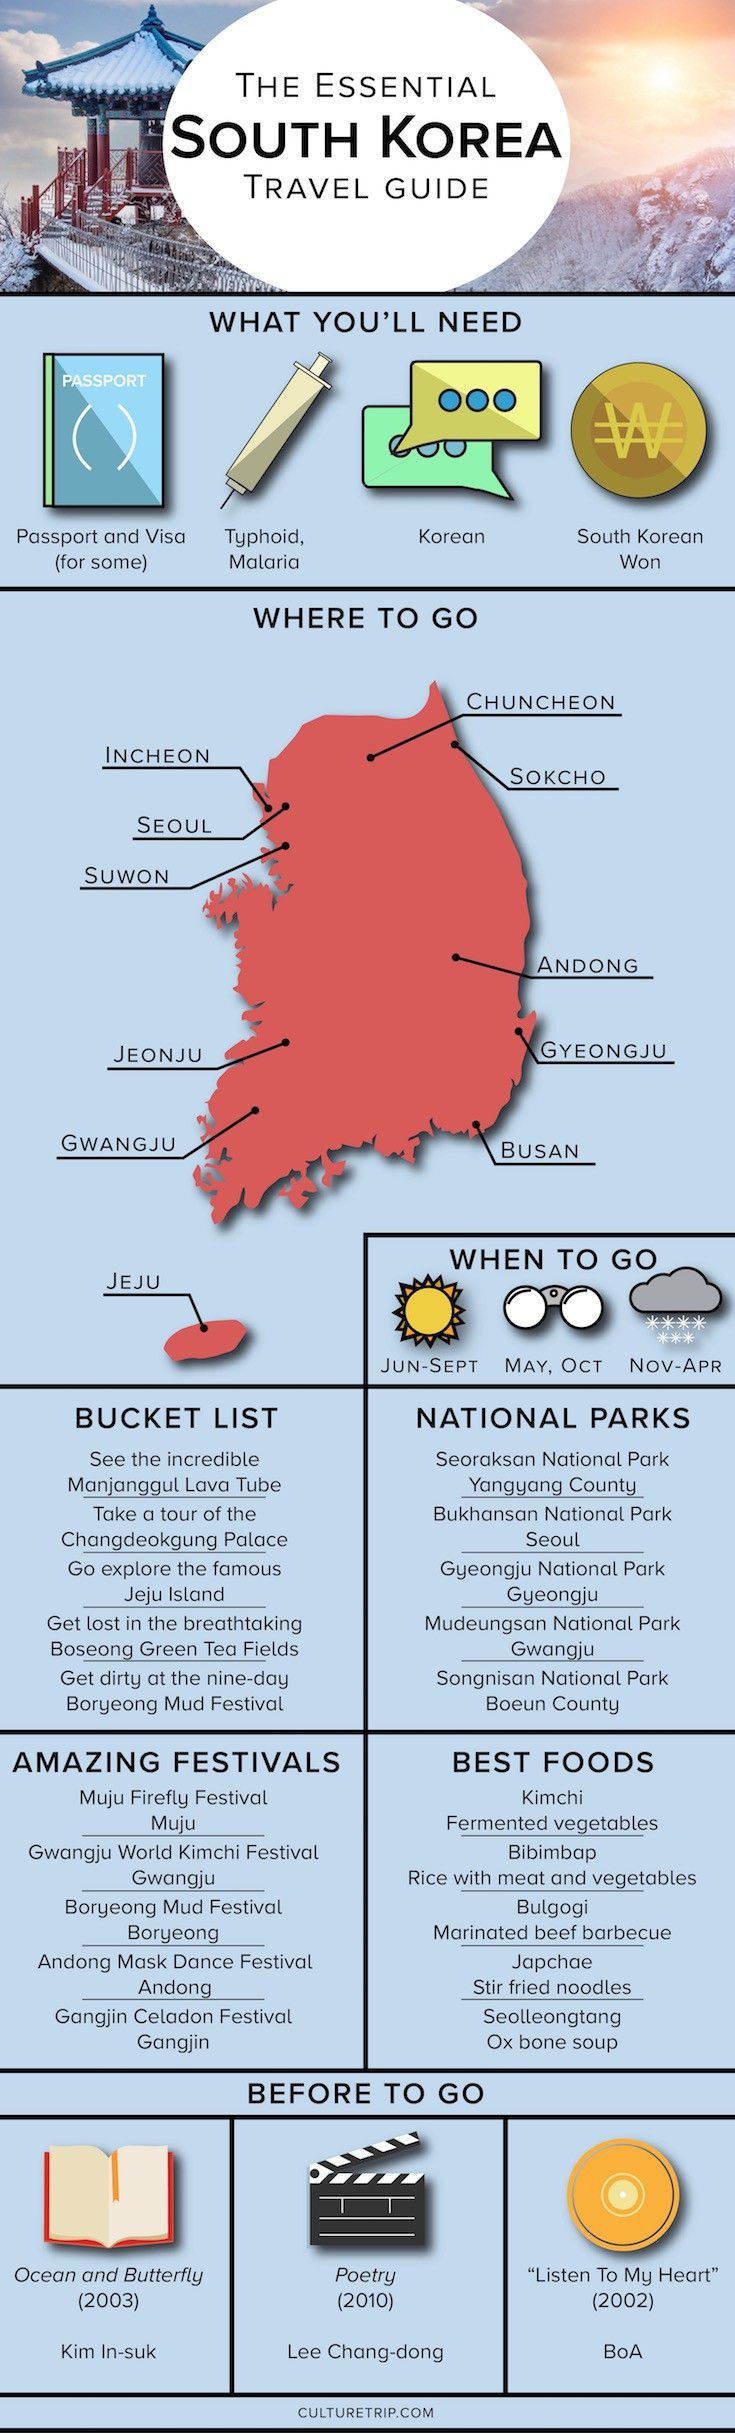 The Essential Travel Guide to South Korea (Infographic)